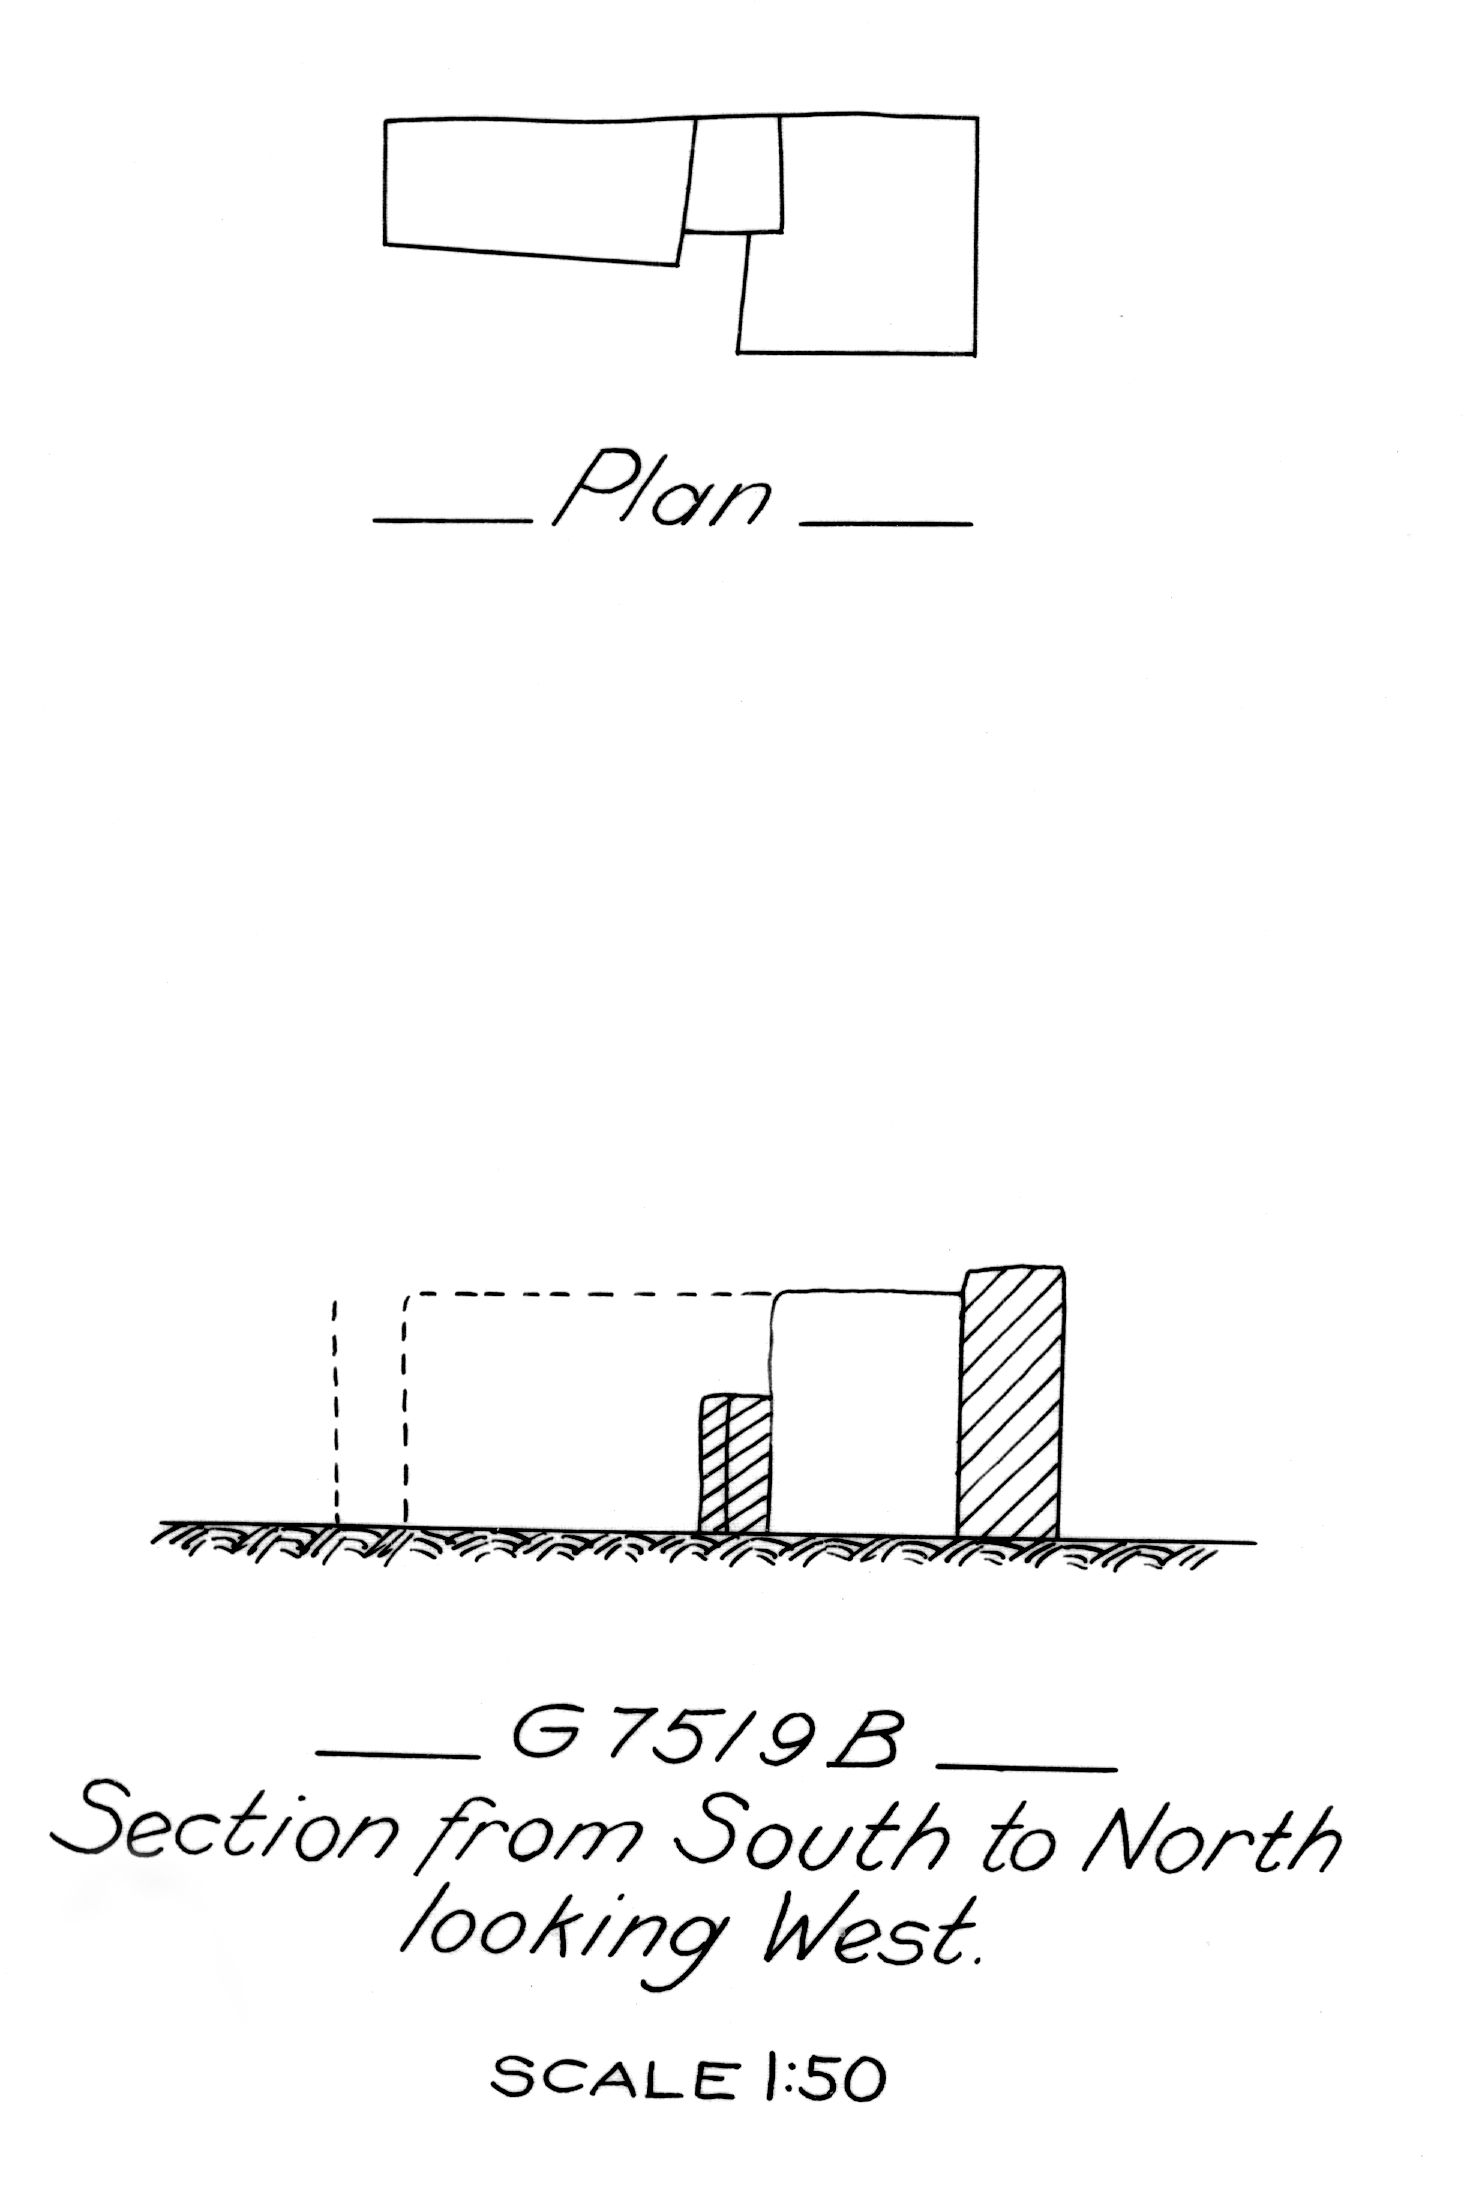 Maps and plans: G 7519, Shaft B